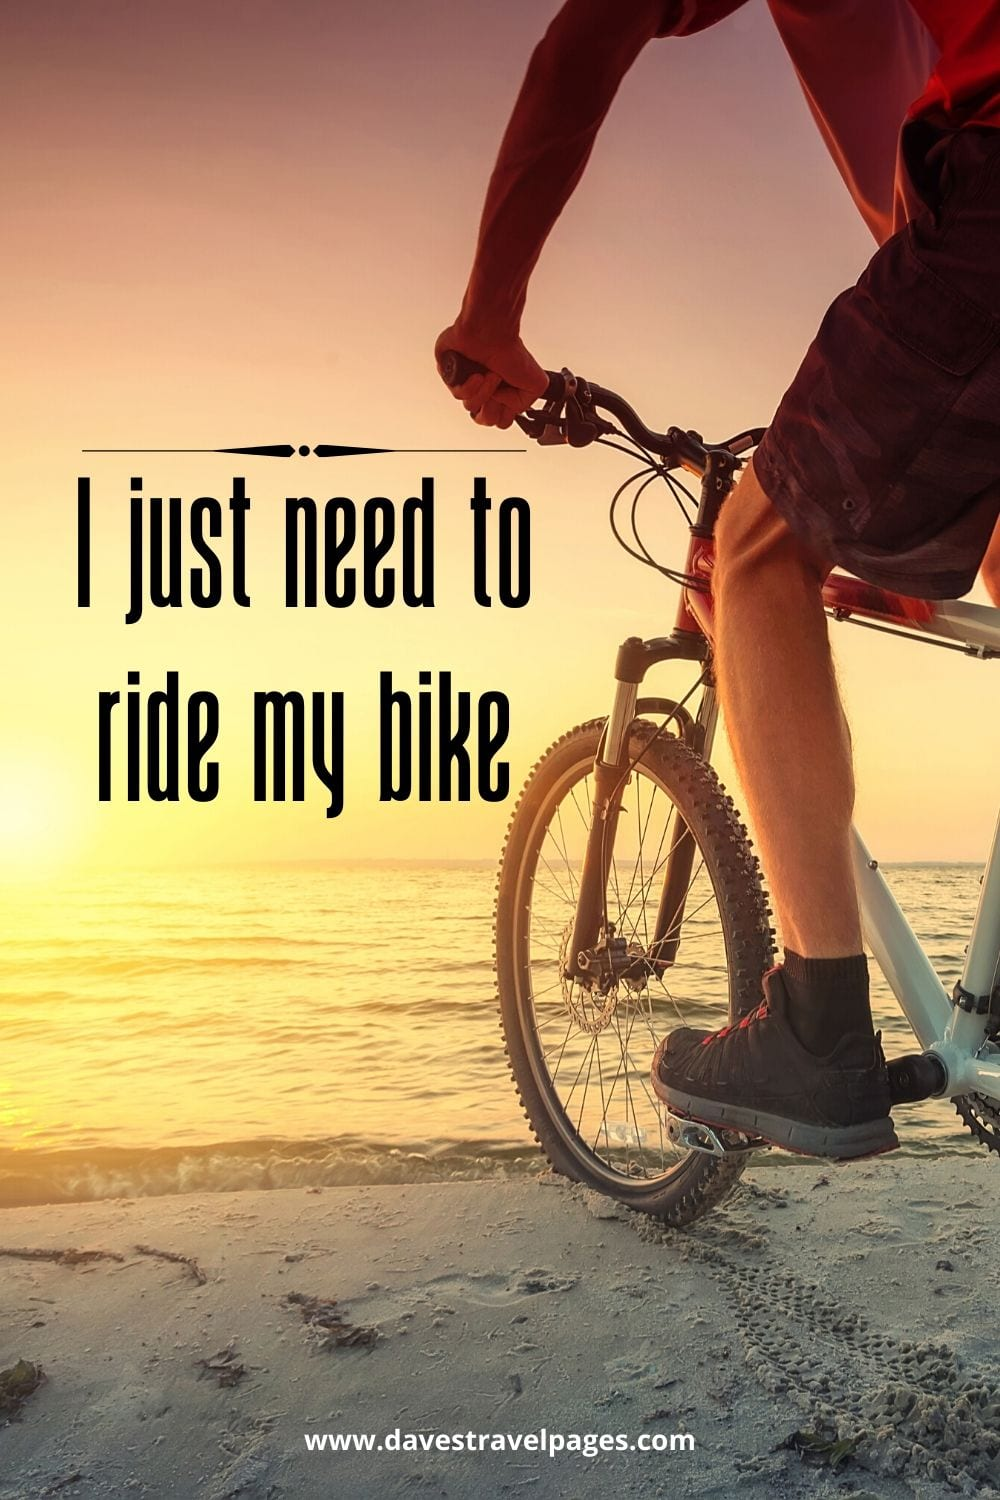 Quotes about bike riding - I just need to ride my bike.